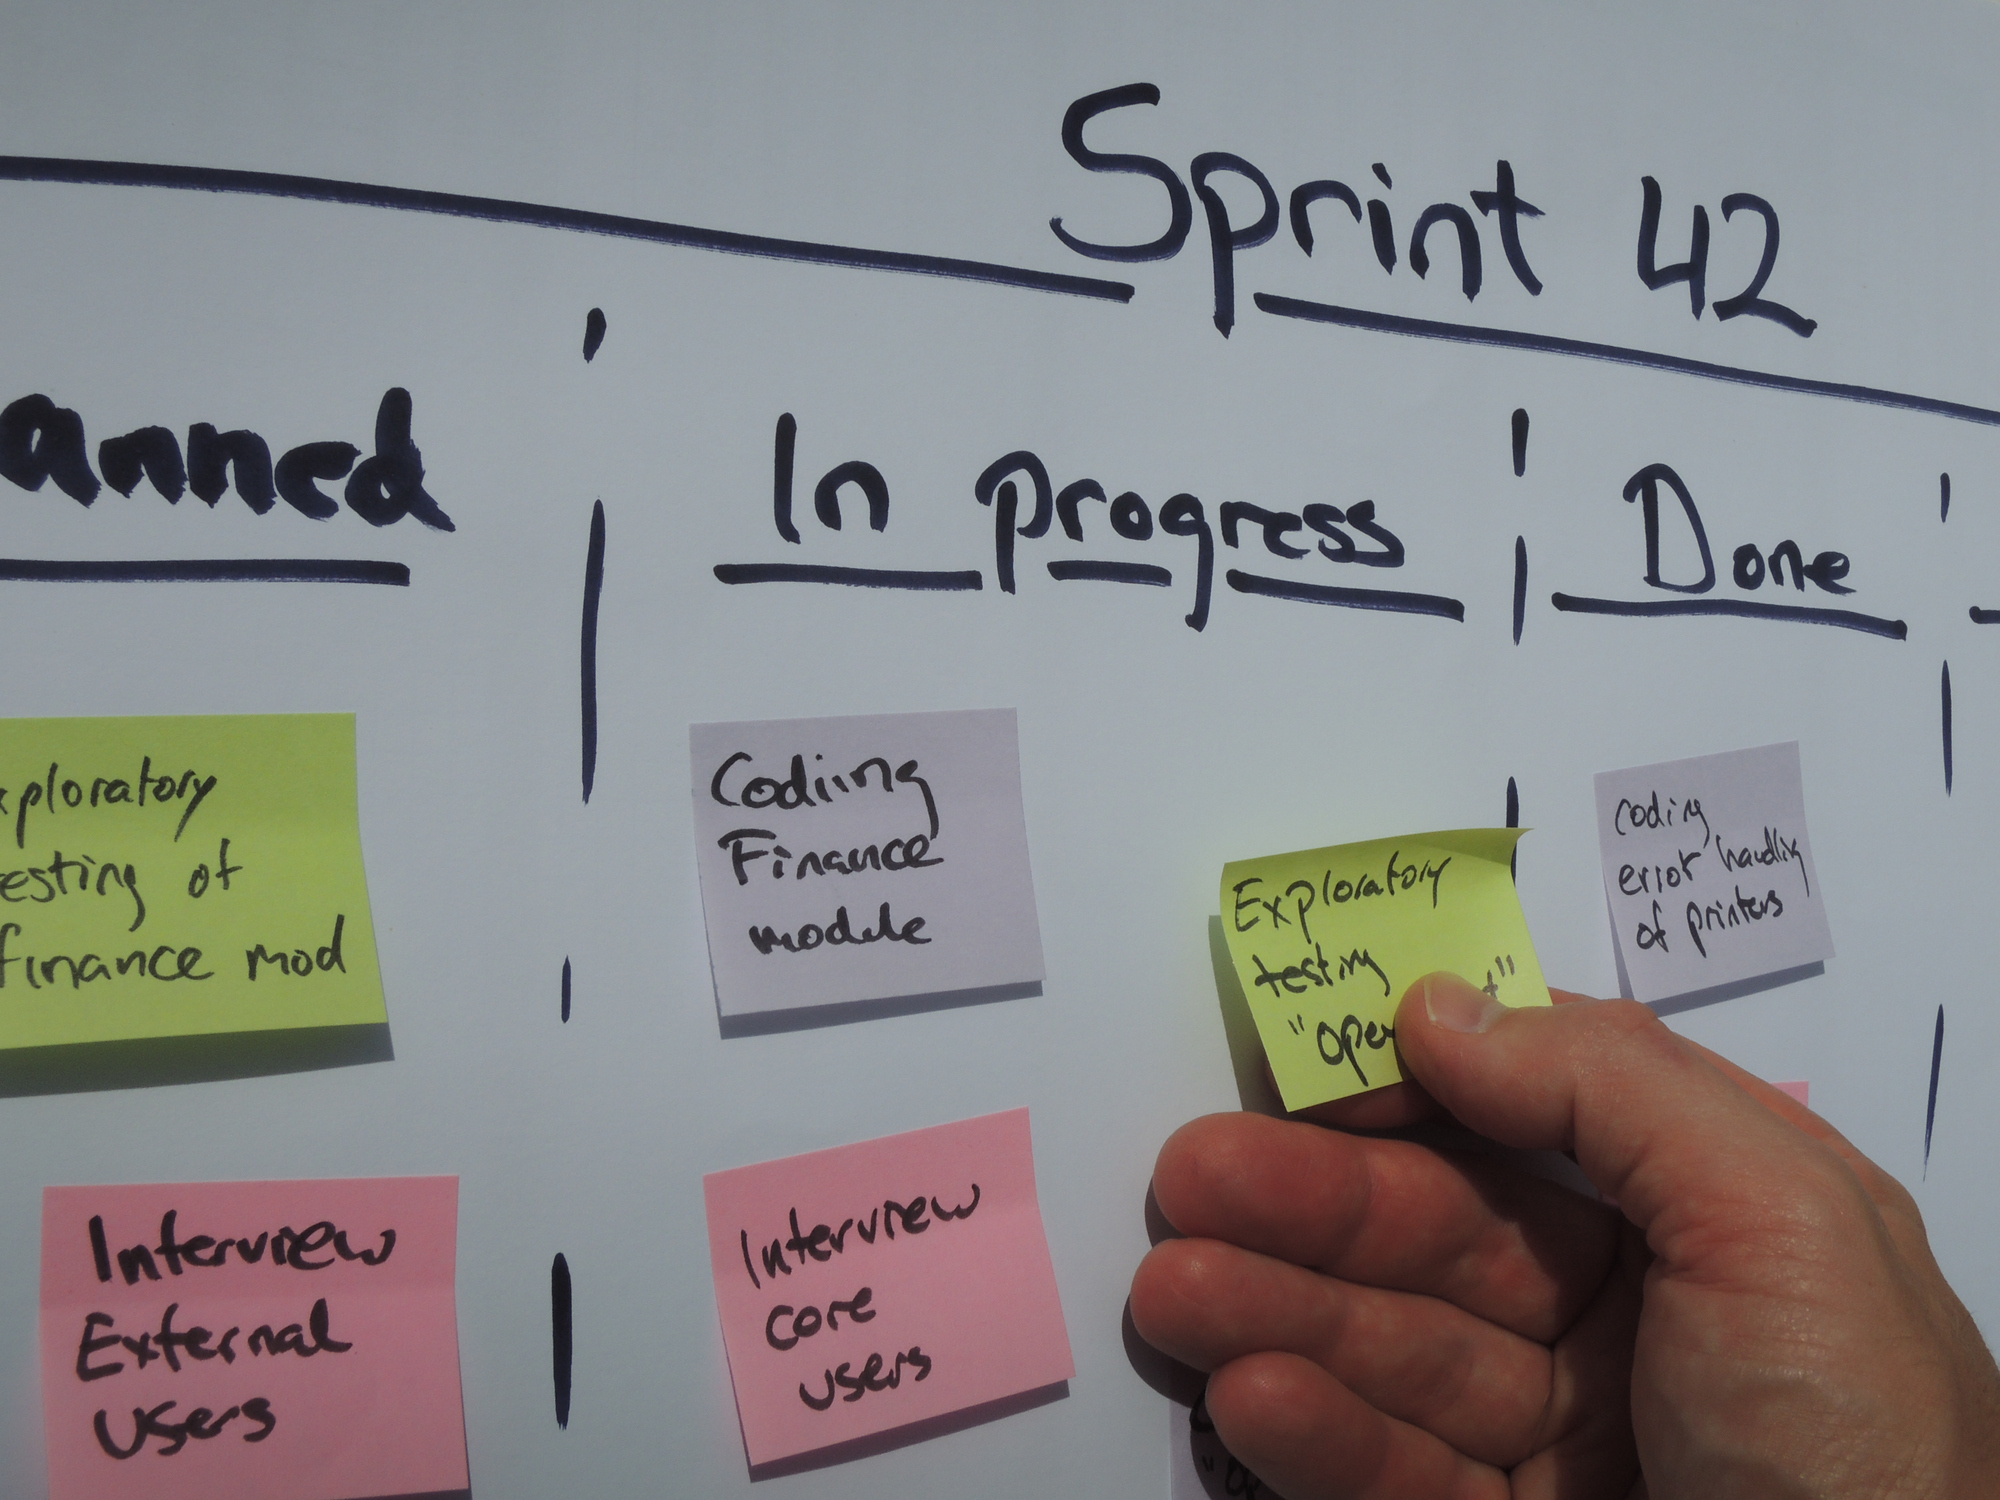 Agile vs. Scrum: Is There a Difference?